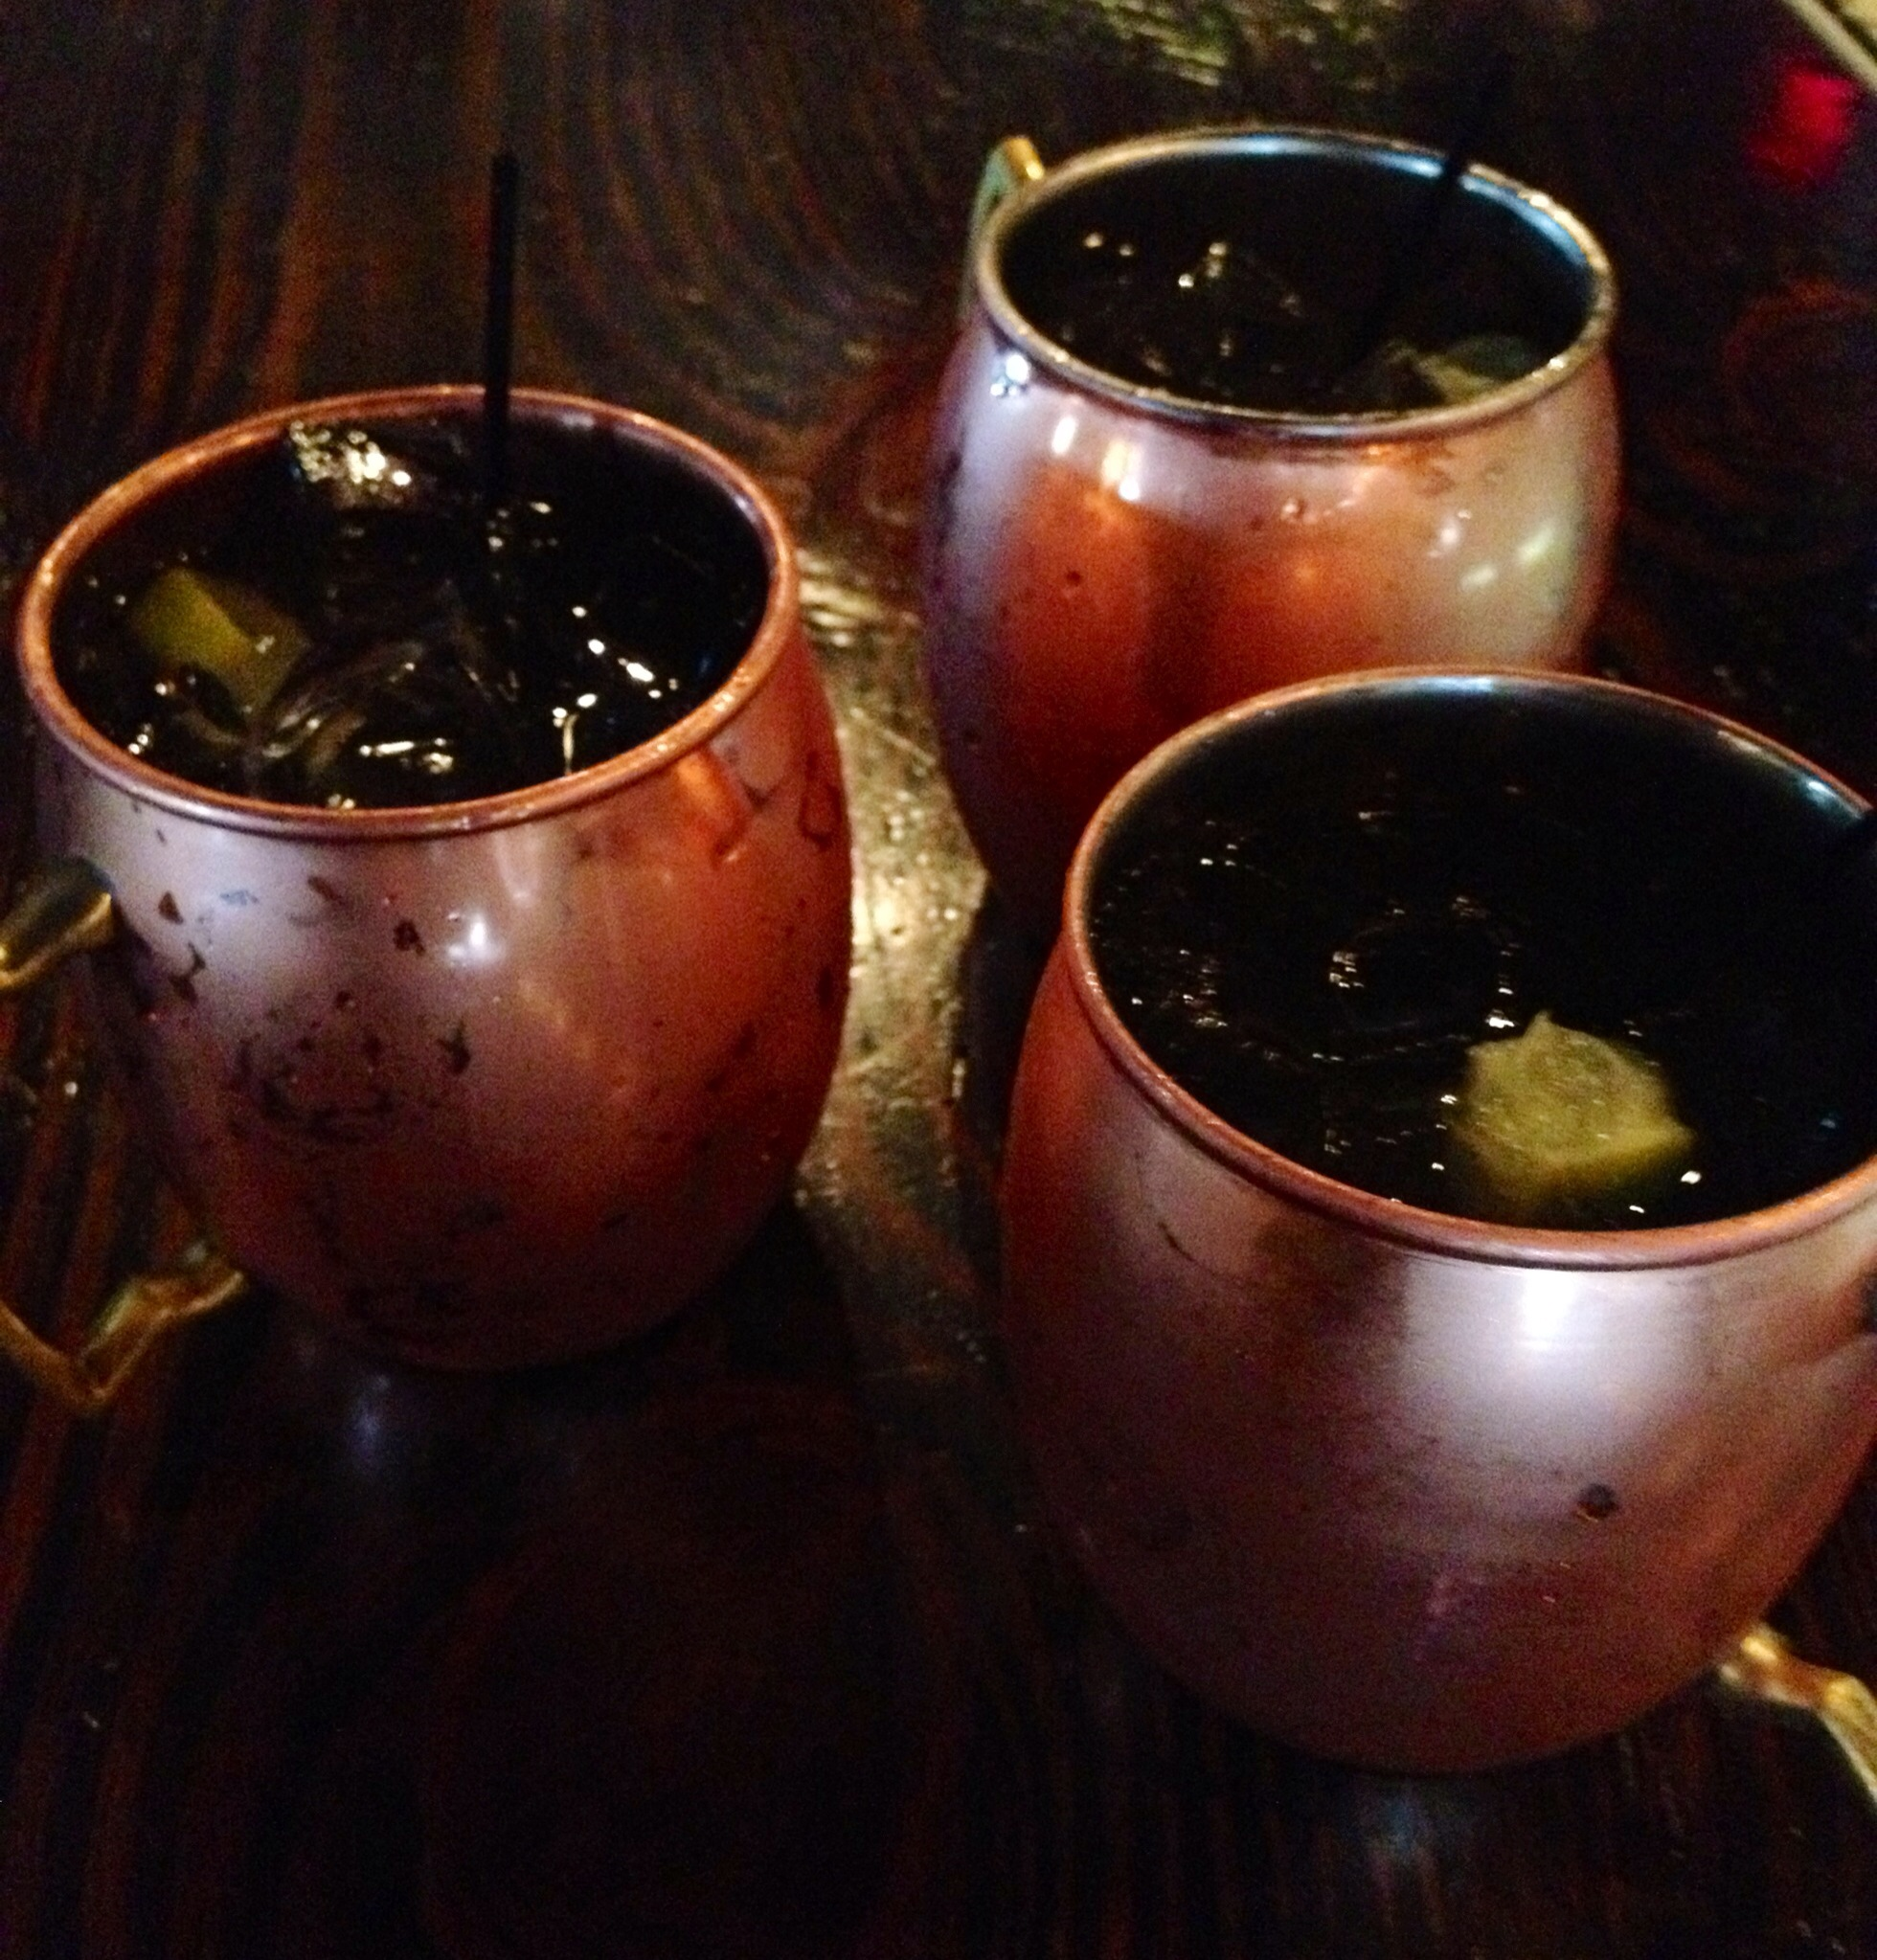 Moscow Mules in copper mugs